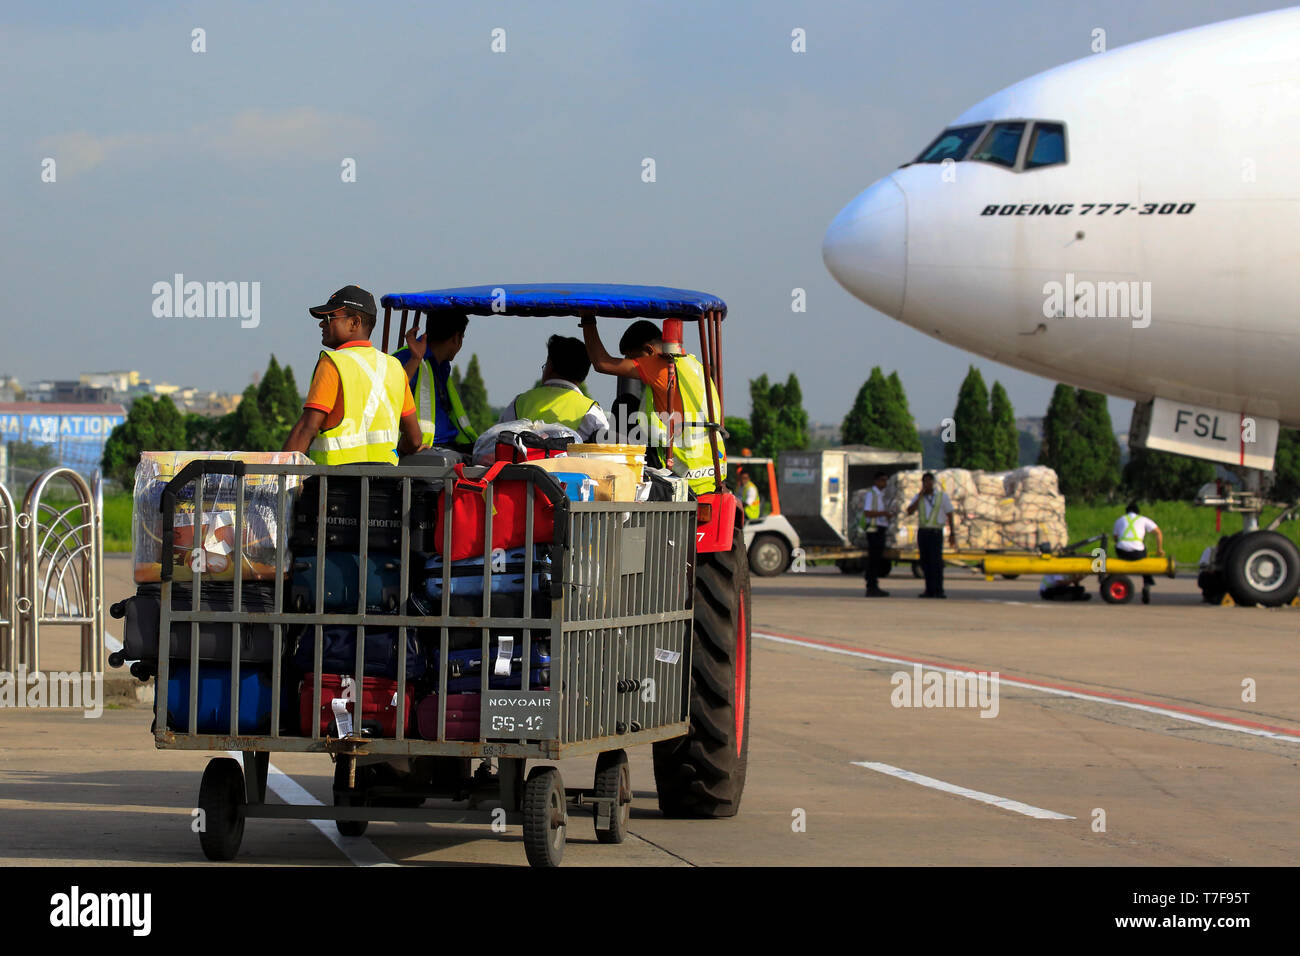 Baggage handler moving luggage at airport airside Hazrat Shahjalal Hazrat Shahjalal International Airport in Dhaka, Bangladesh. Stock Photo